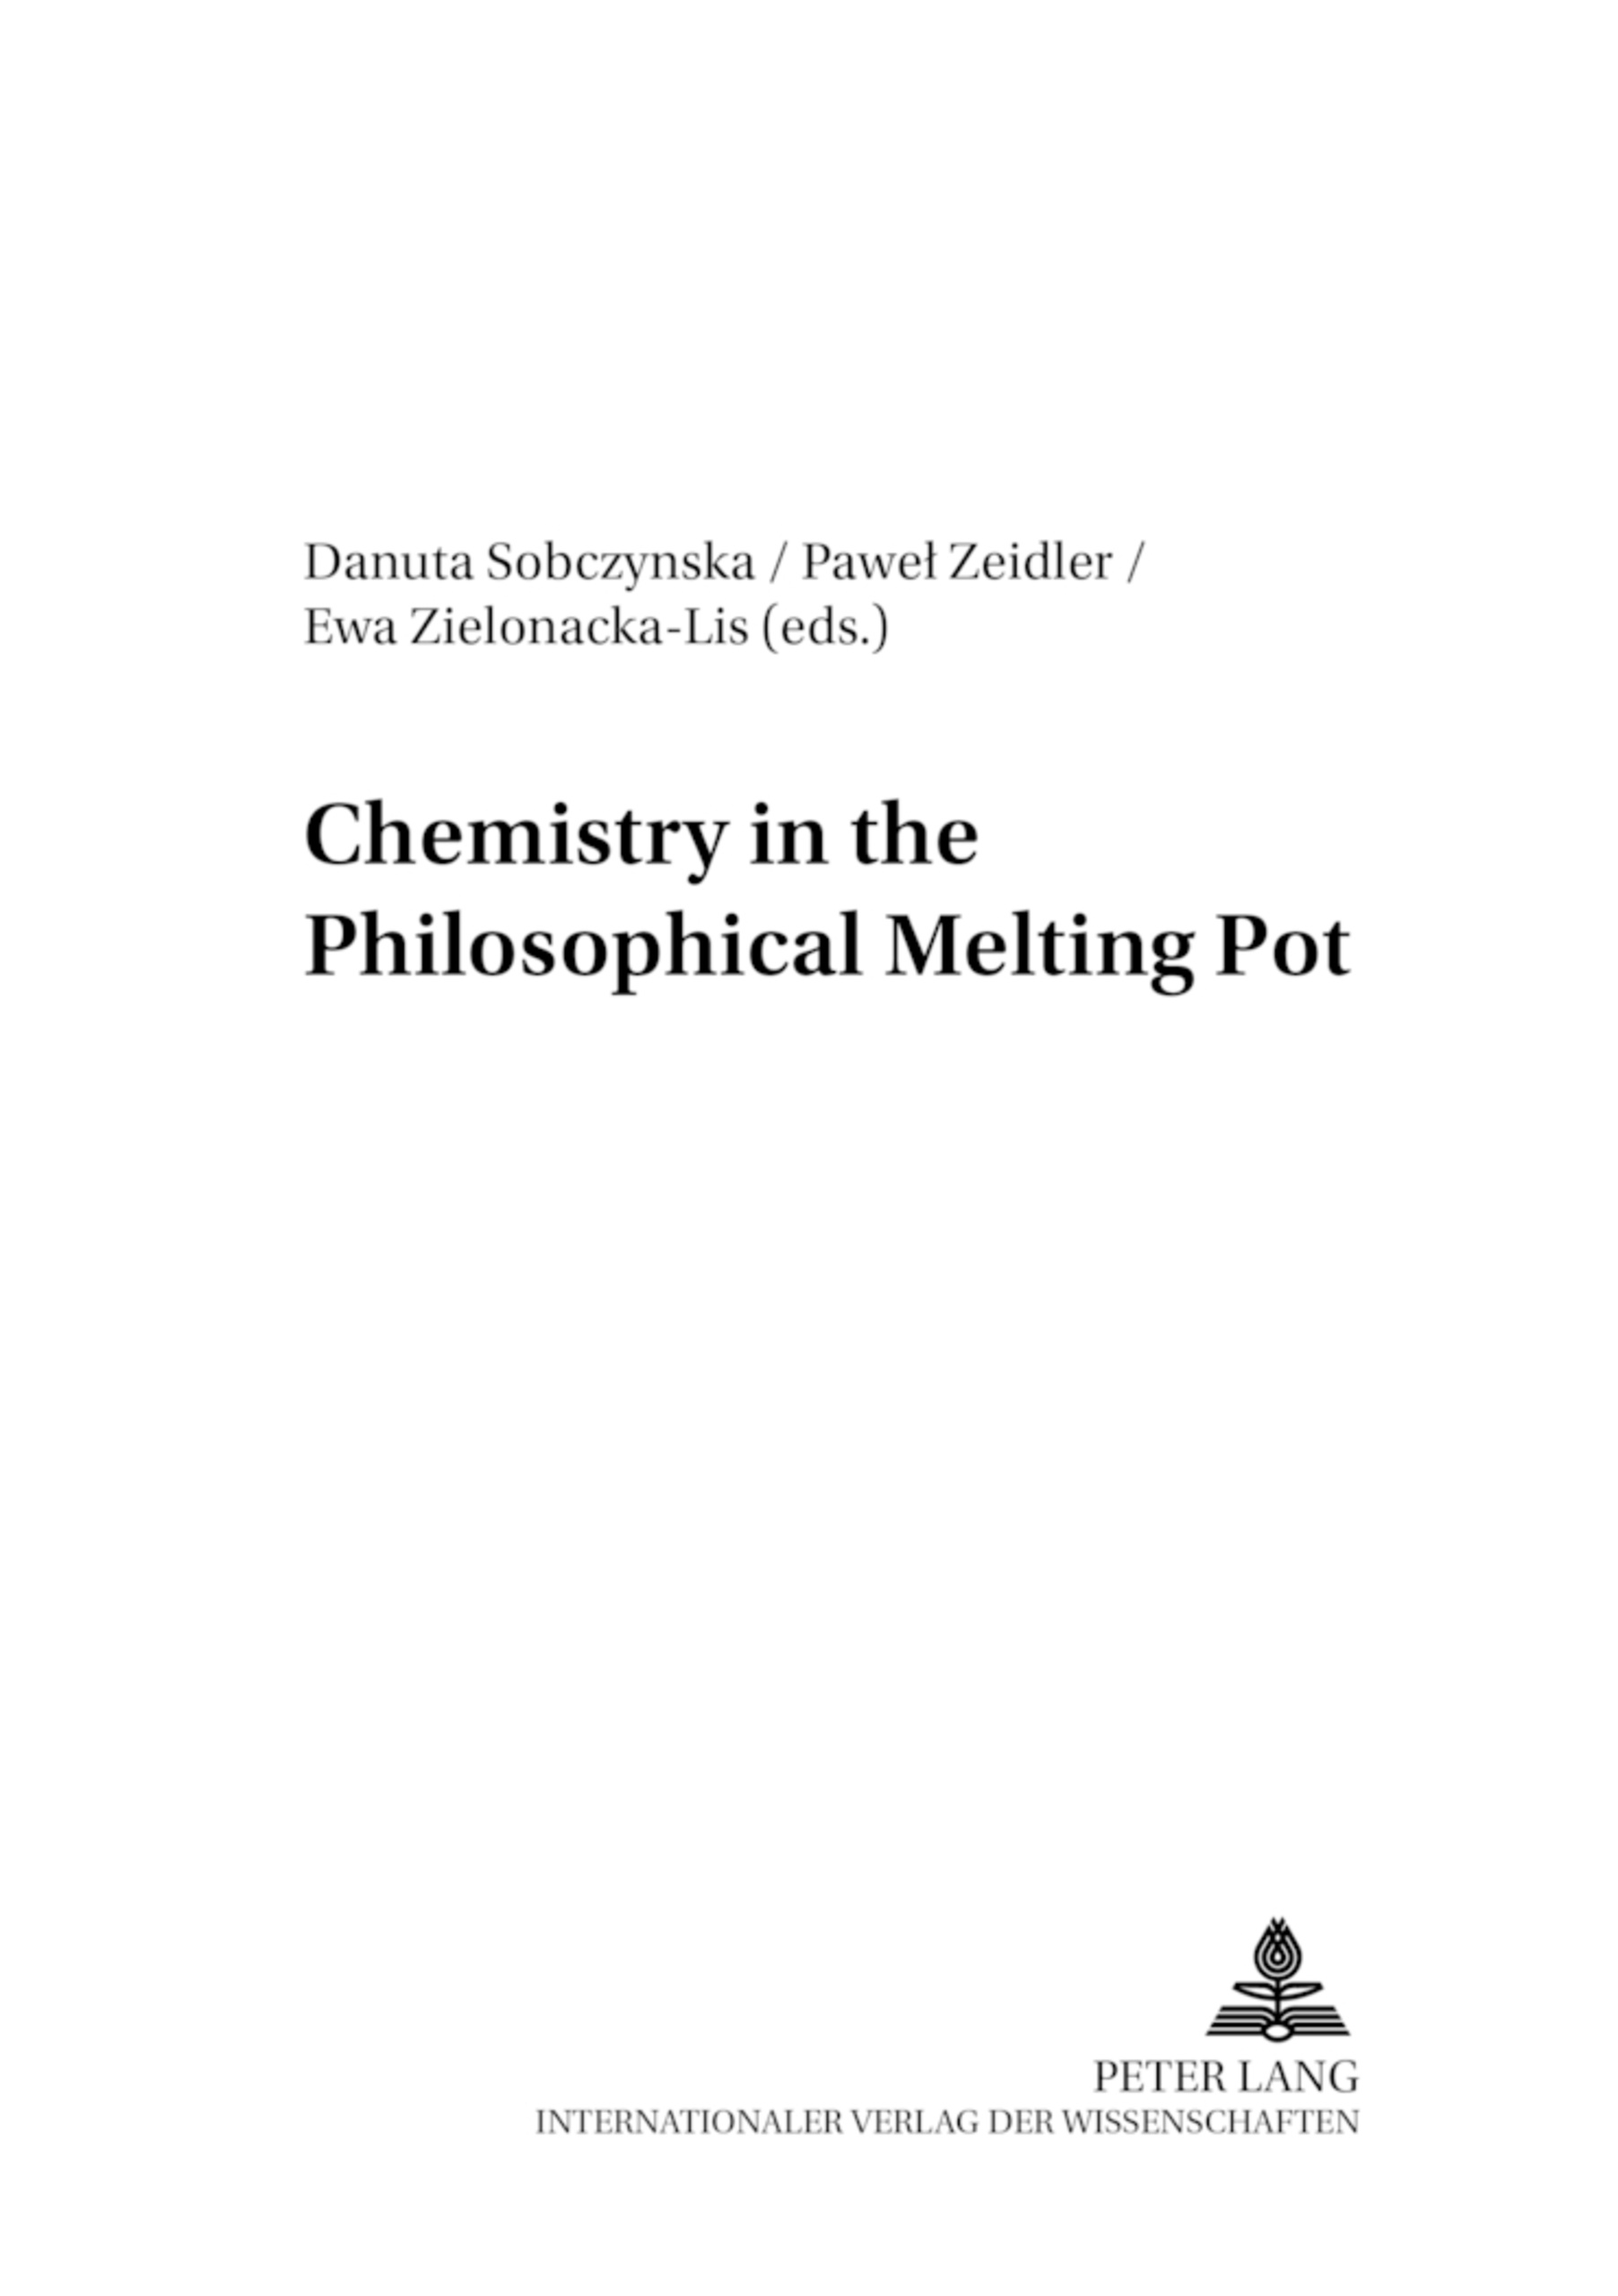 Title: Chemistry in the Philosophical Melting Pot